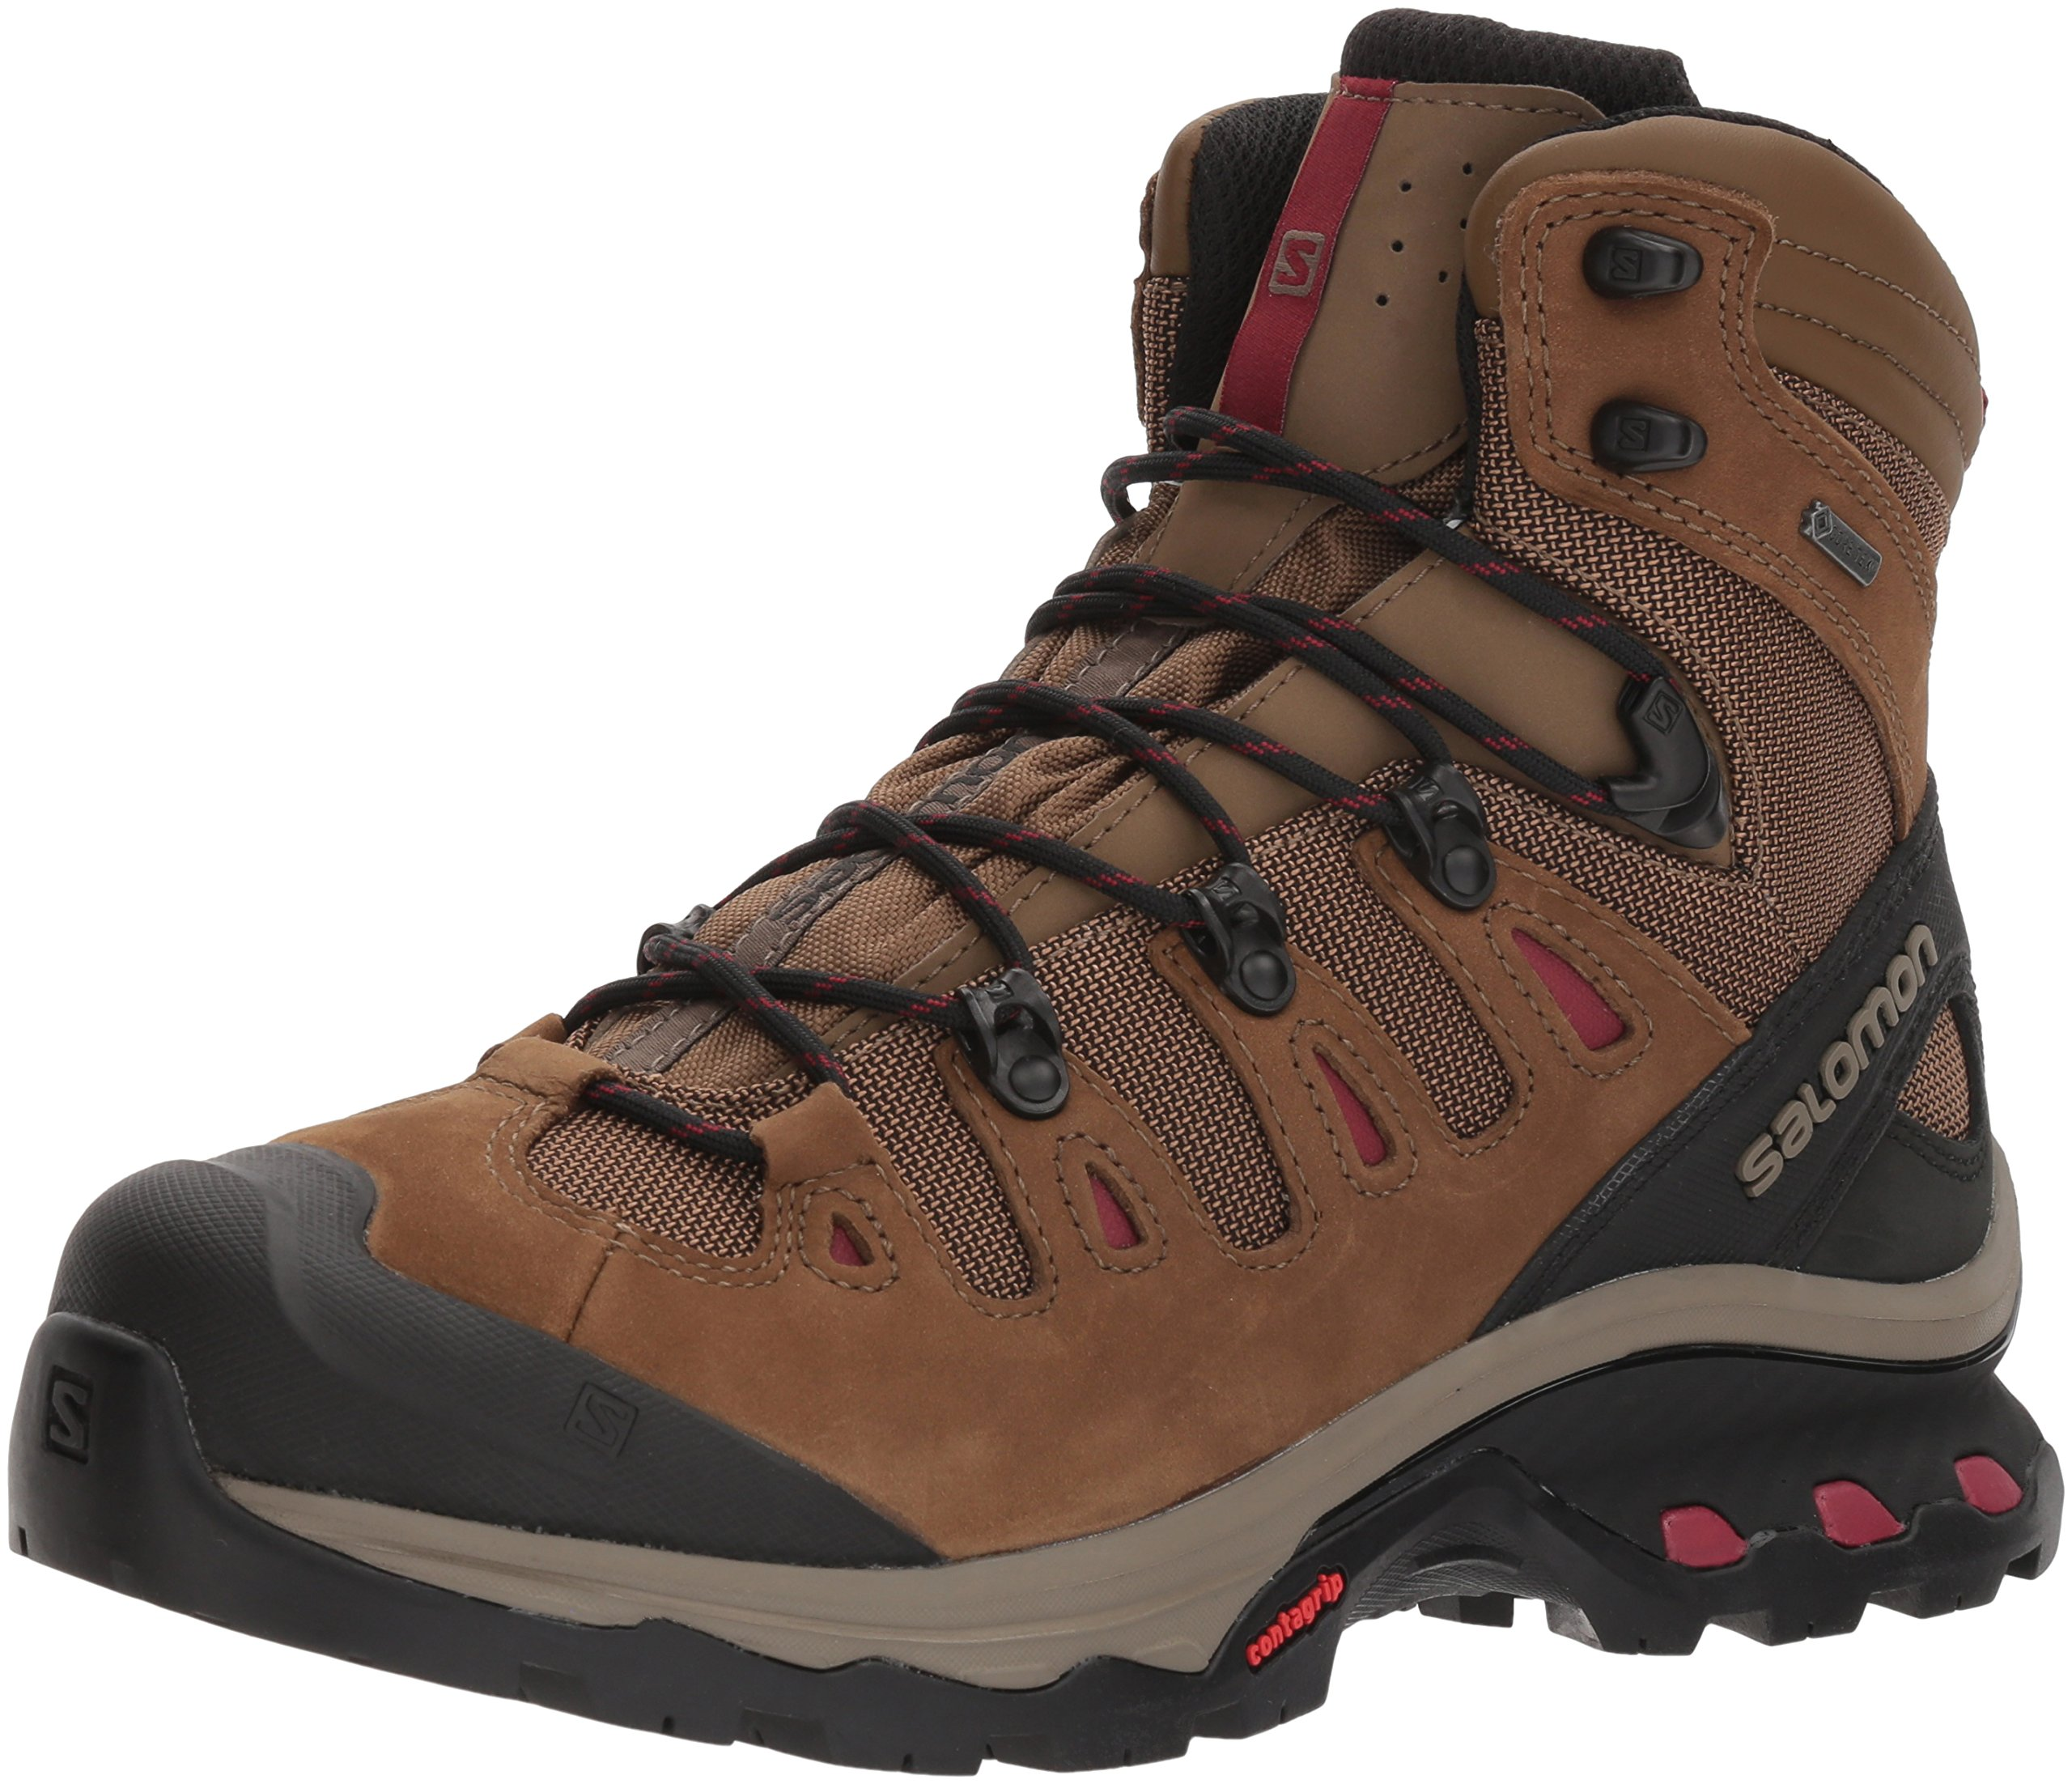 Salomon Women's Quest 4D 3 Gtx W Backpacking Boots, Teak, 5.5 B US